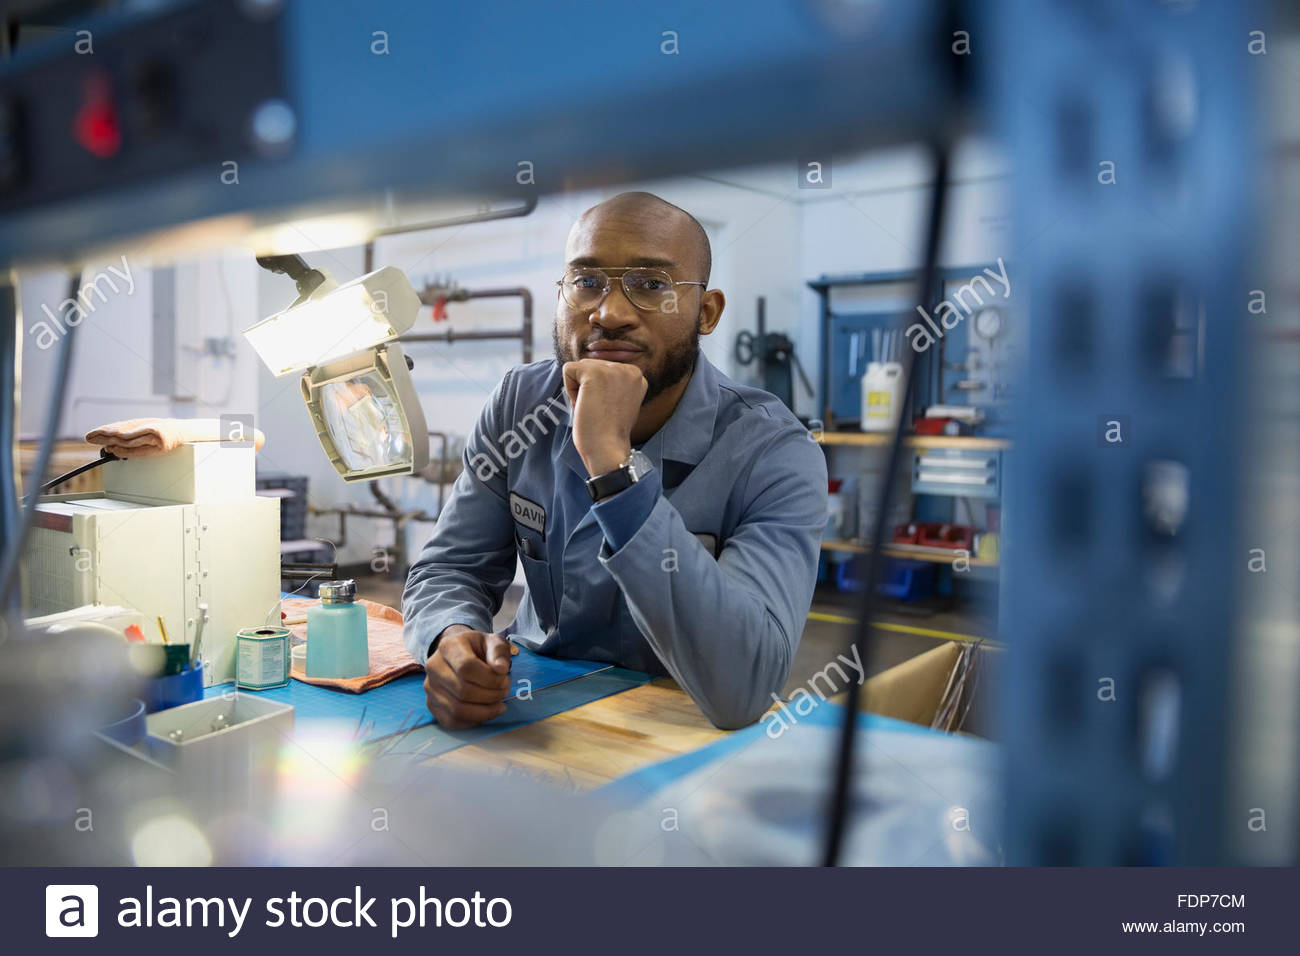 Portrait serious worker in factory workshop - Stock Image